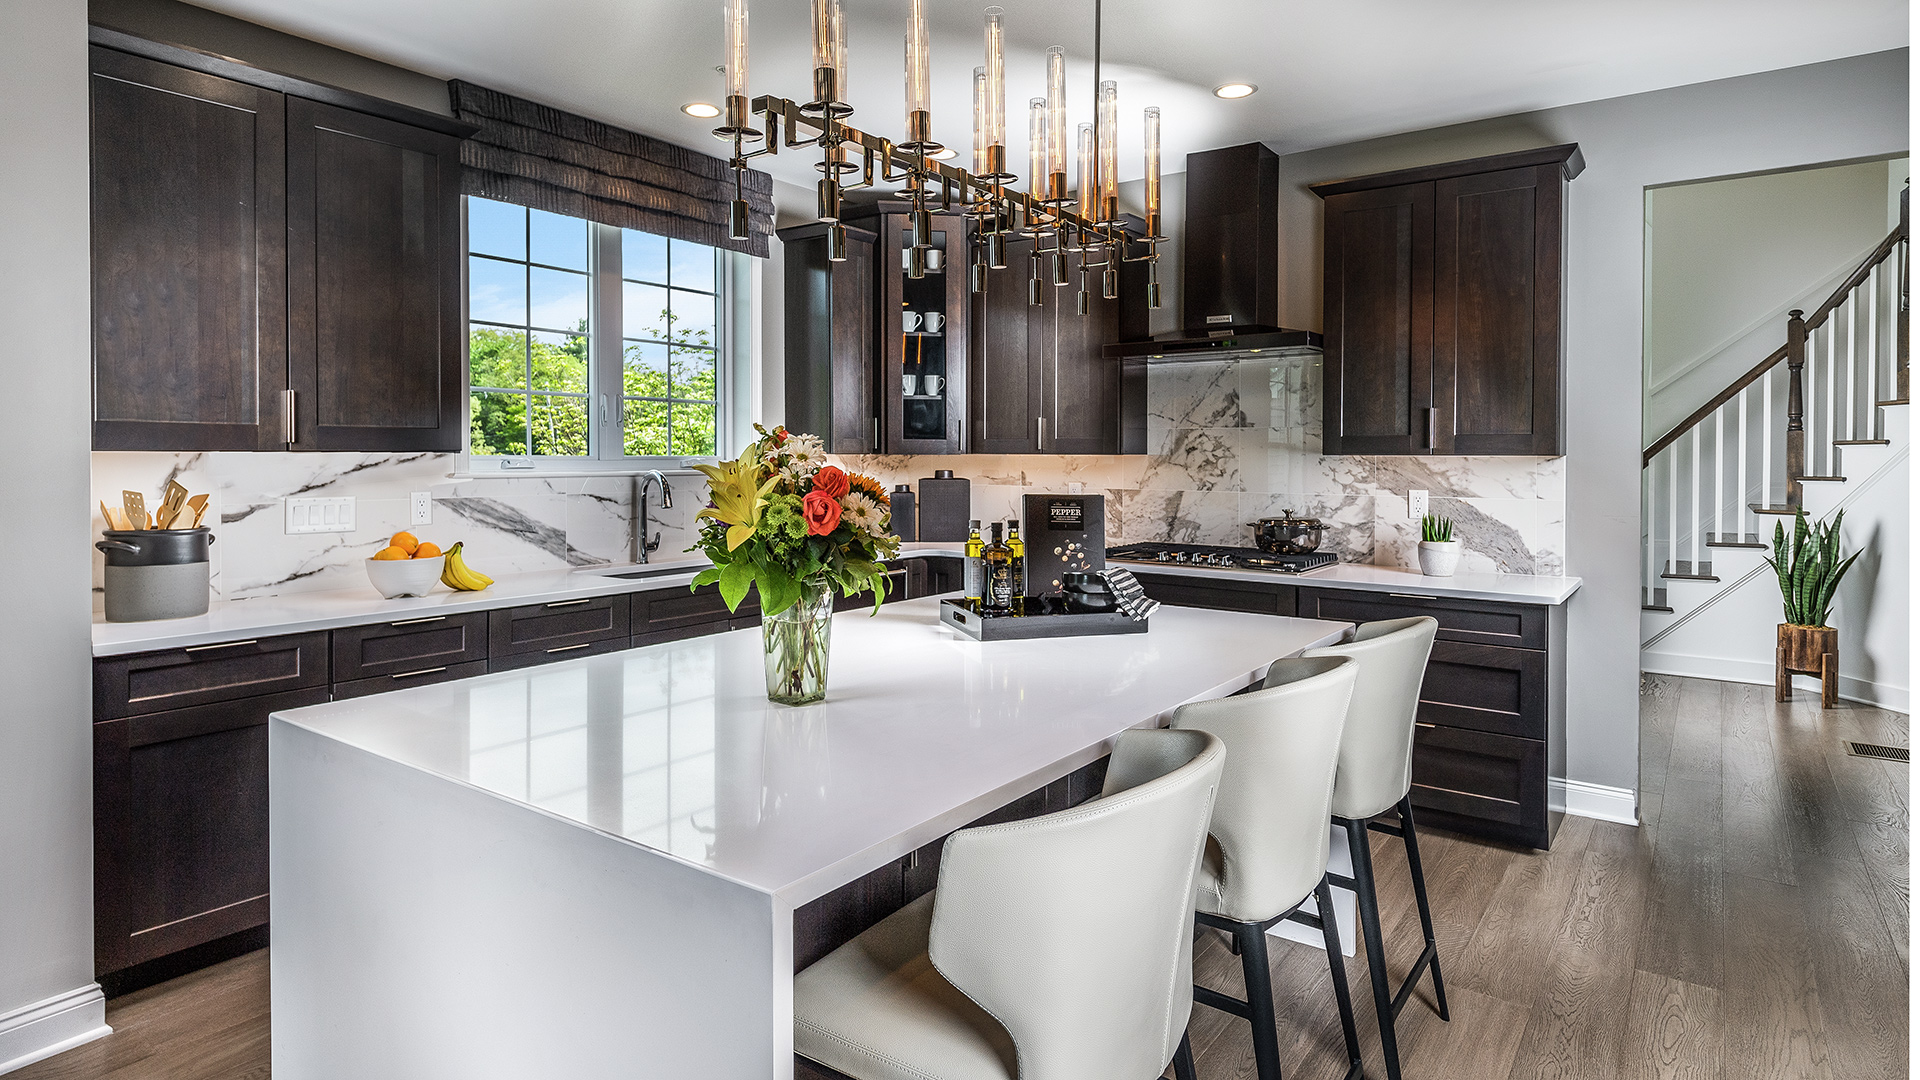 Kitchen with center island and designer finishes